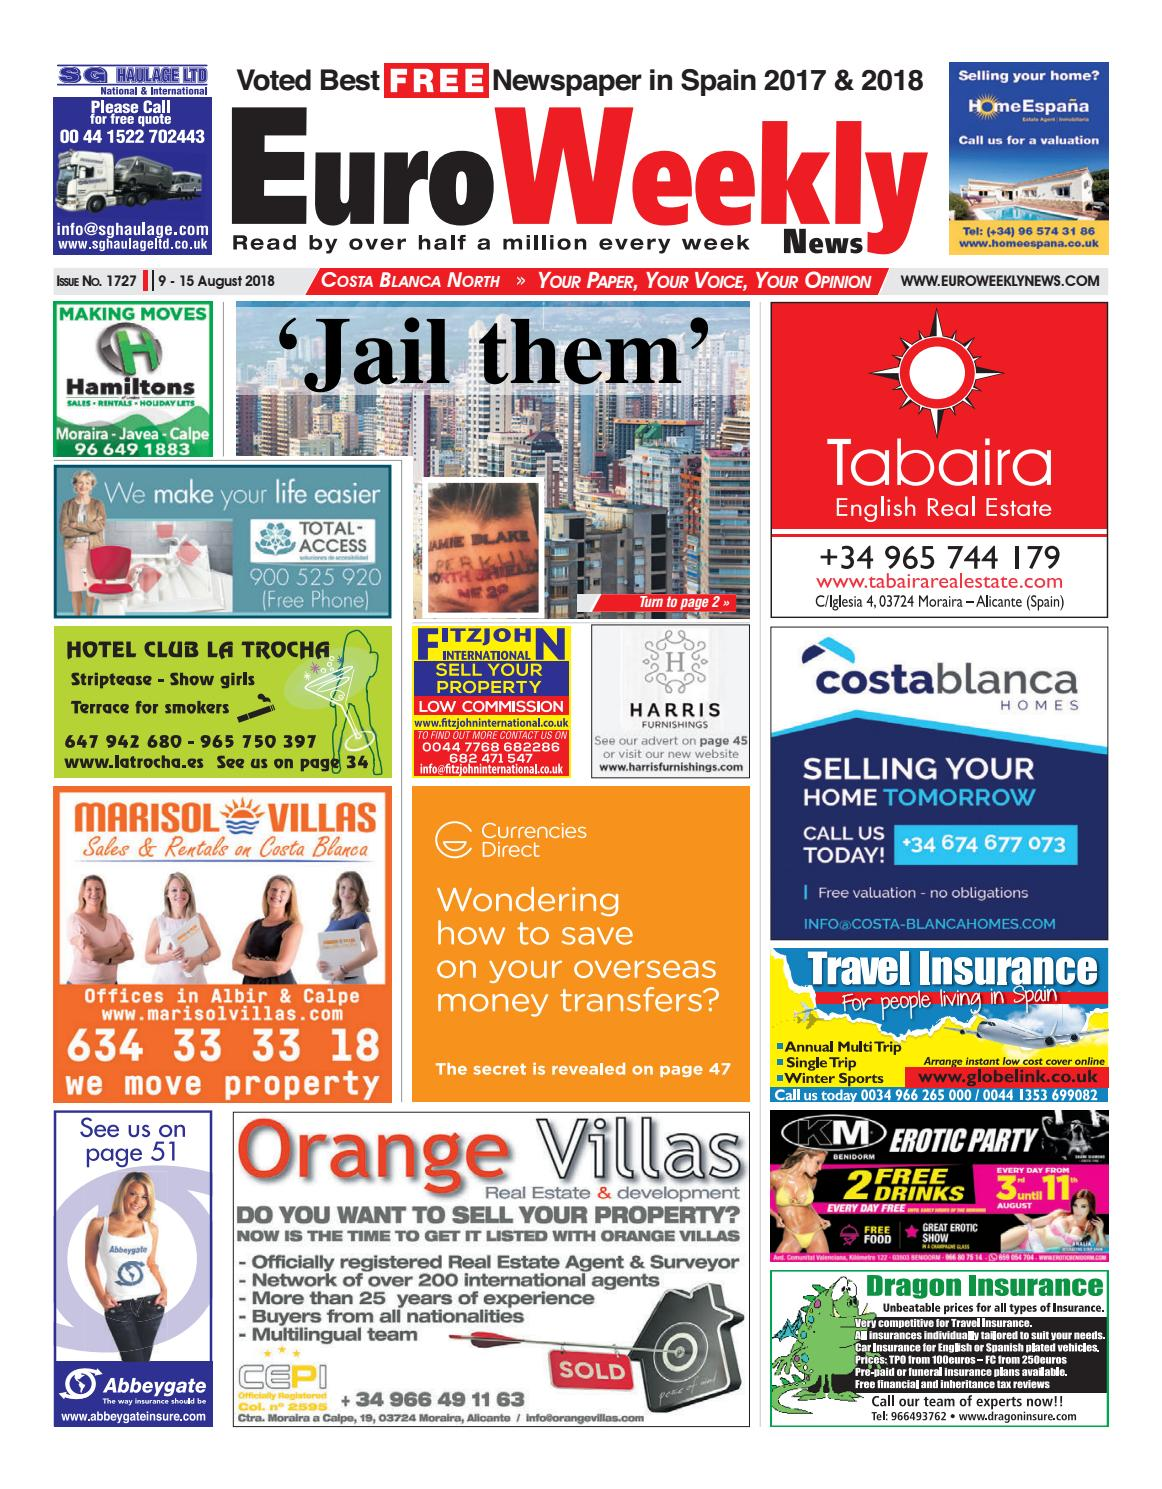 Euro Weekly News Costa Blanca North 9 15 August 2018 Issue 1727 Haywire Pro T Wiring System By Media Sa Issuu